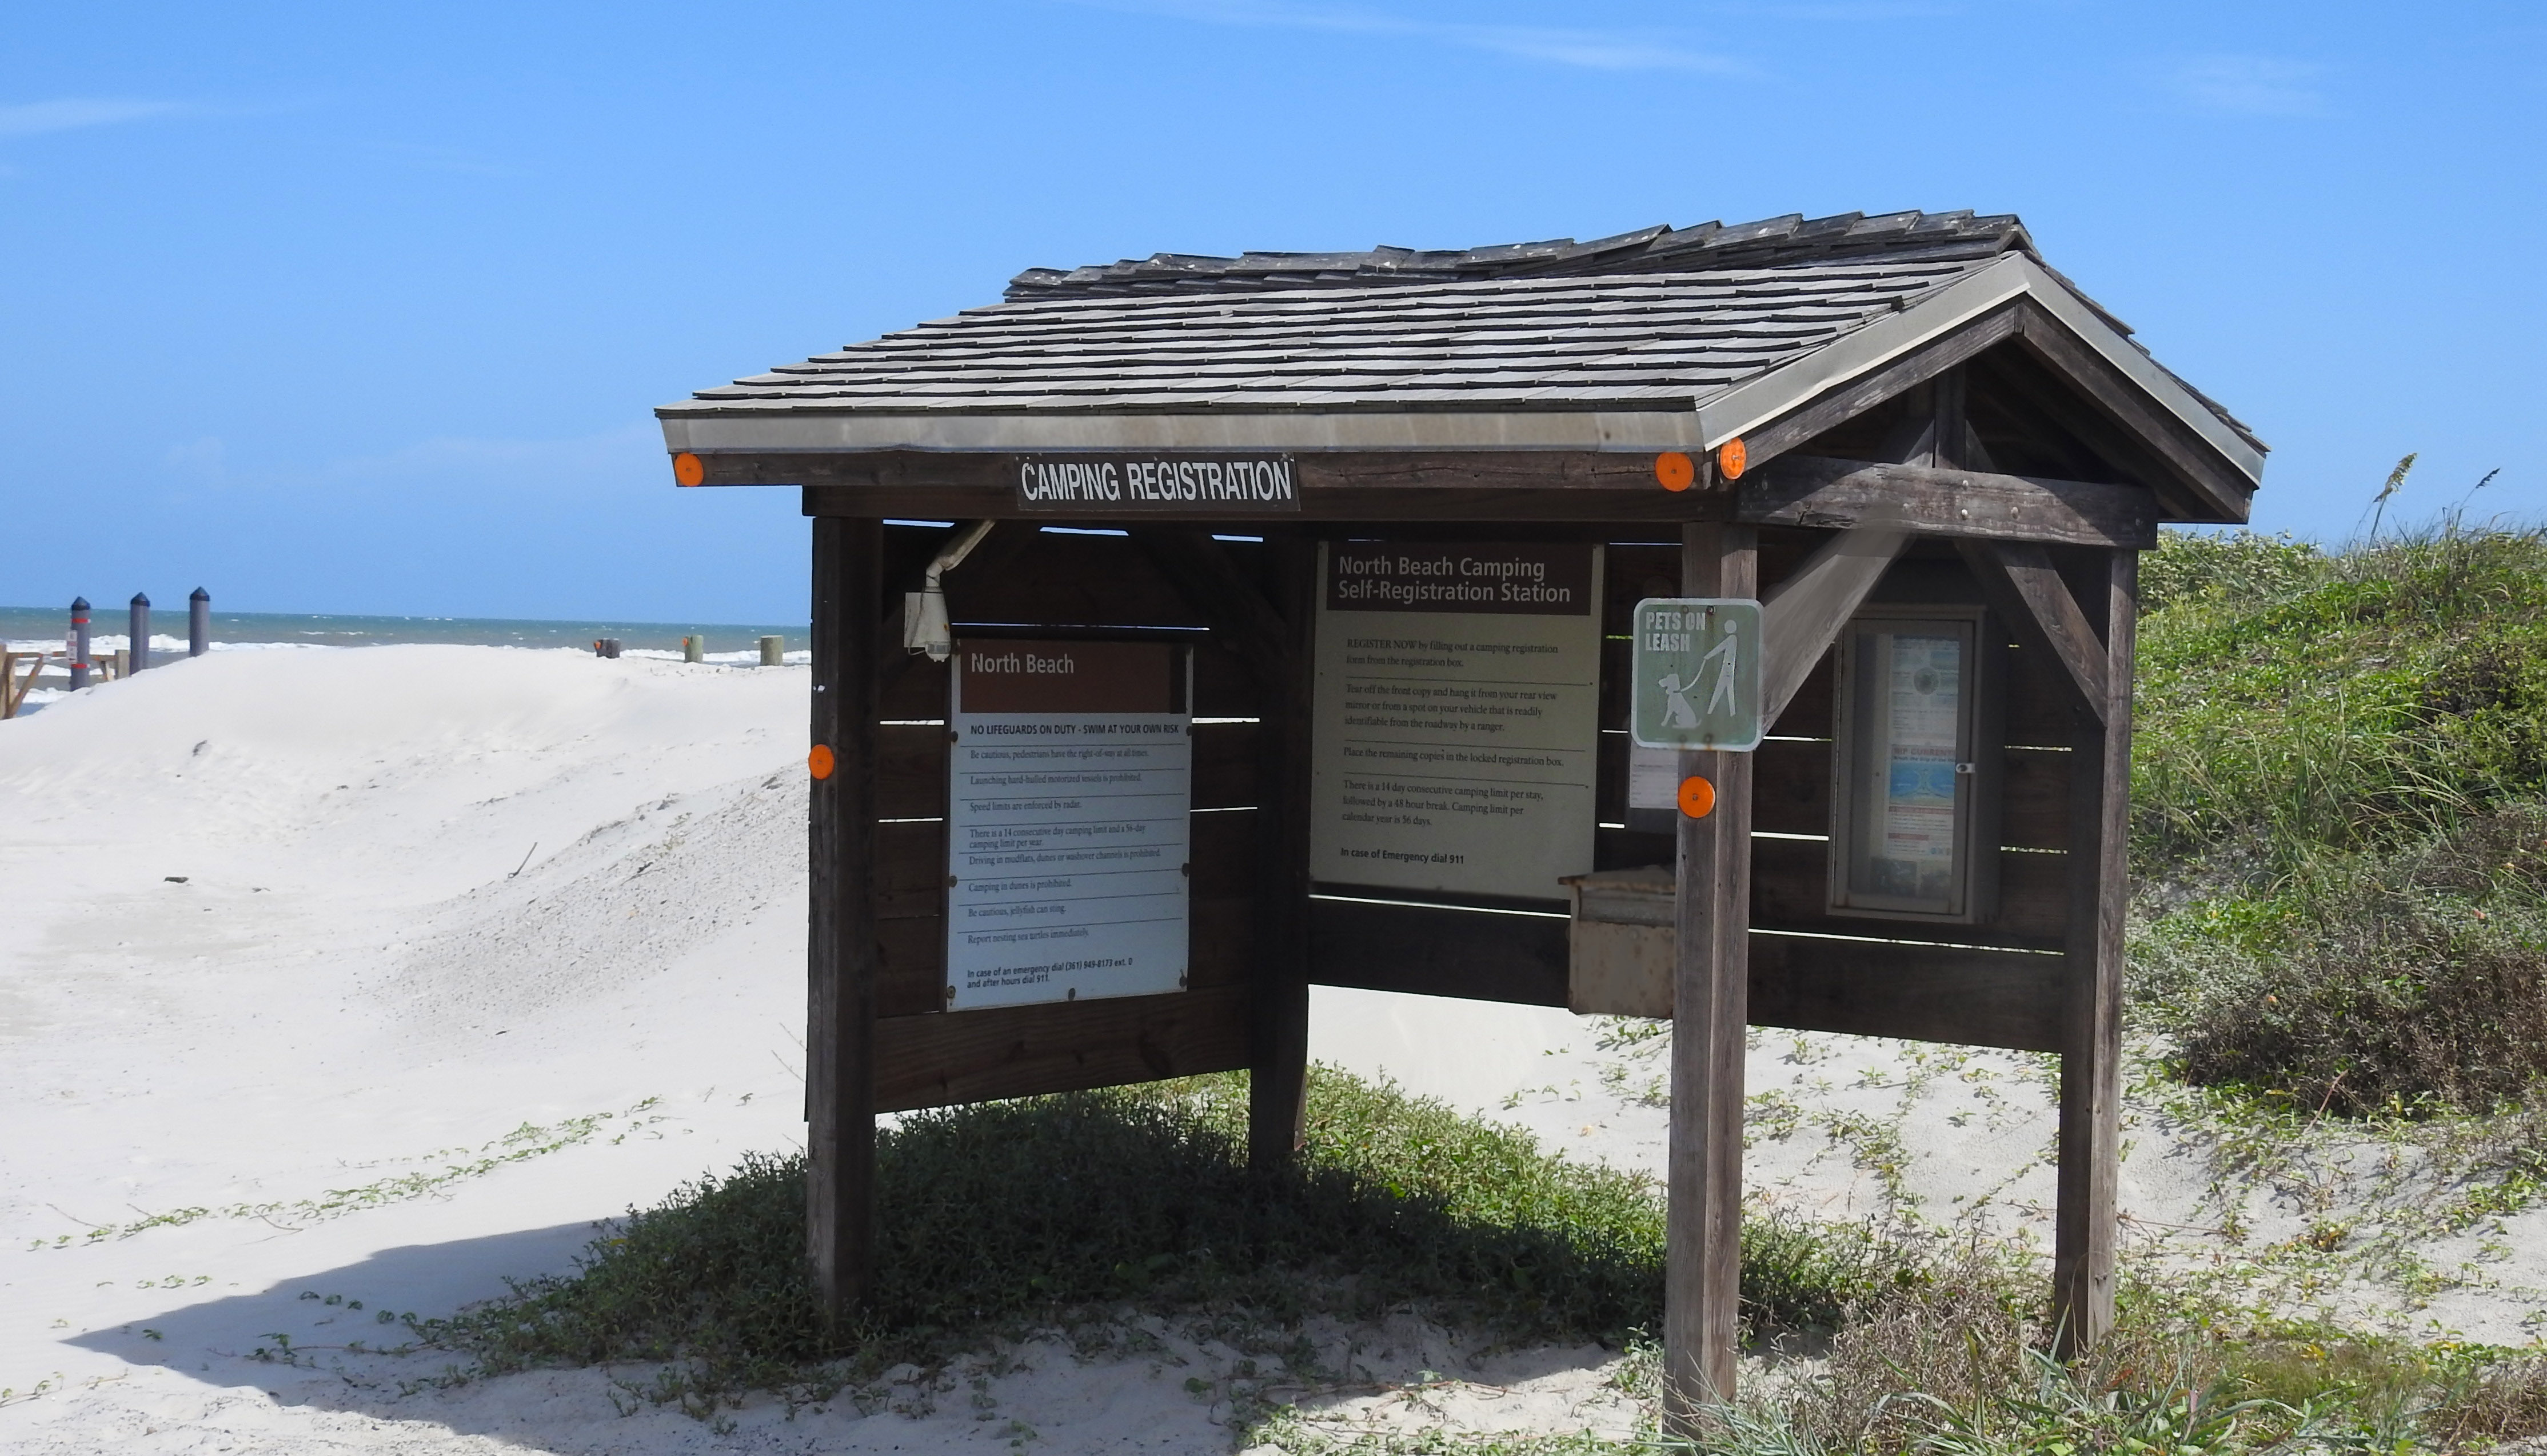 Self registration kiosk for camping permits at North Beach